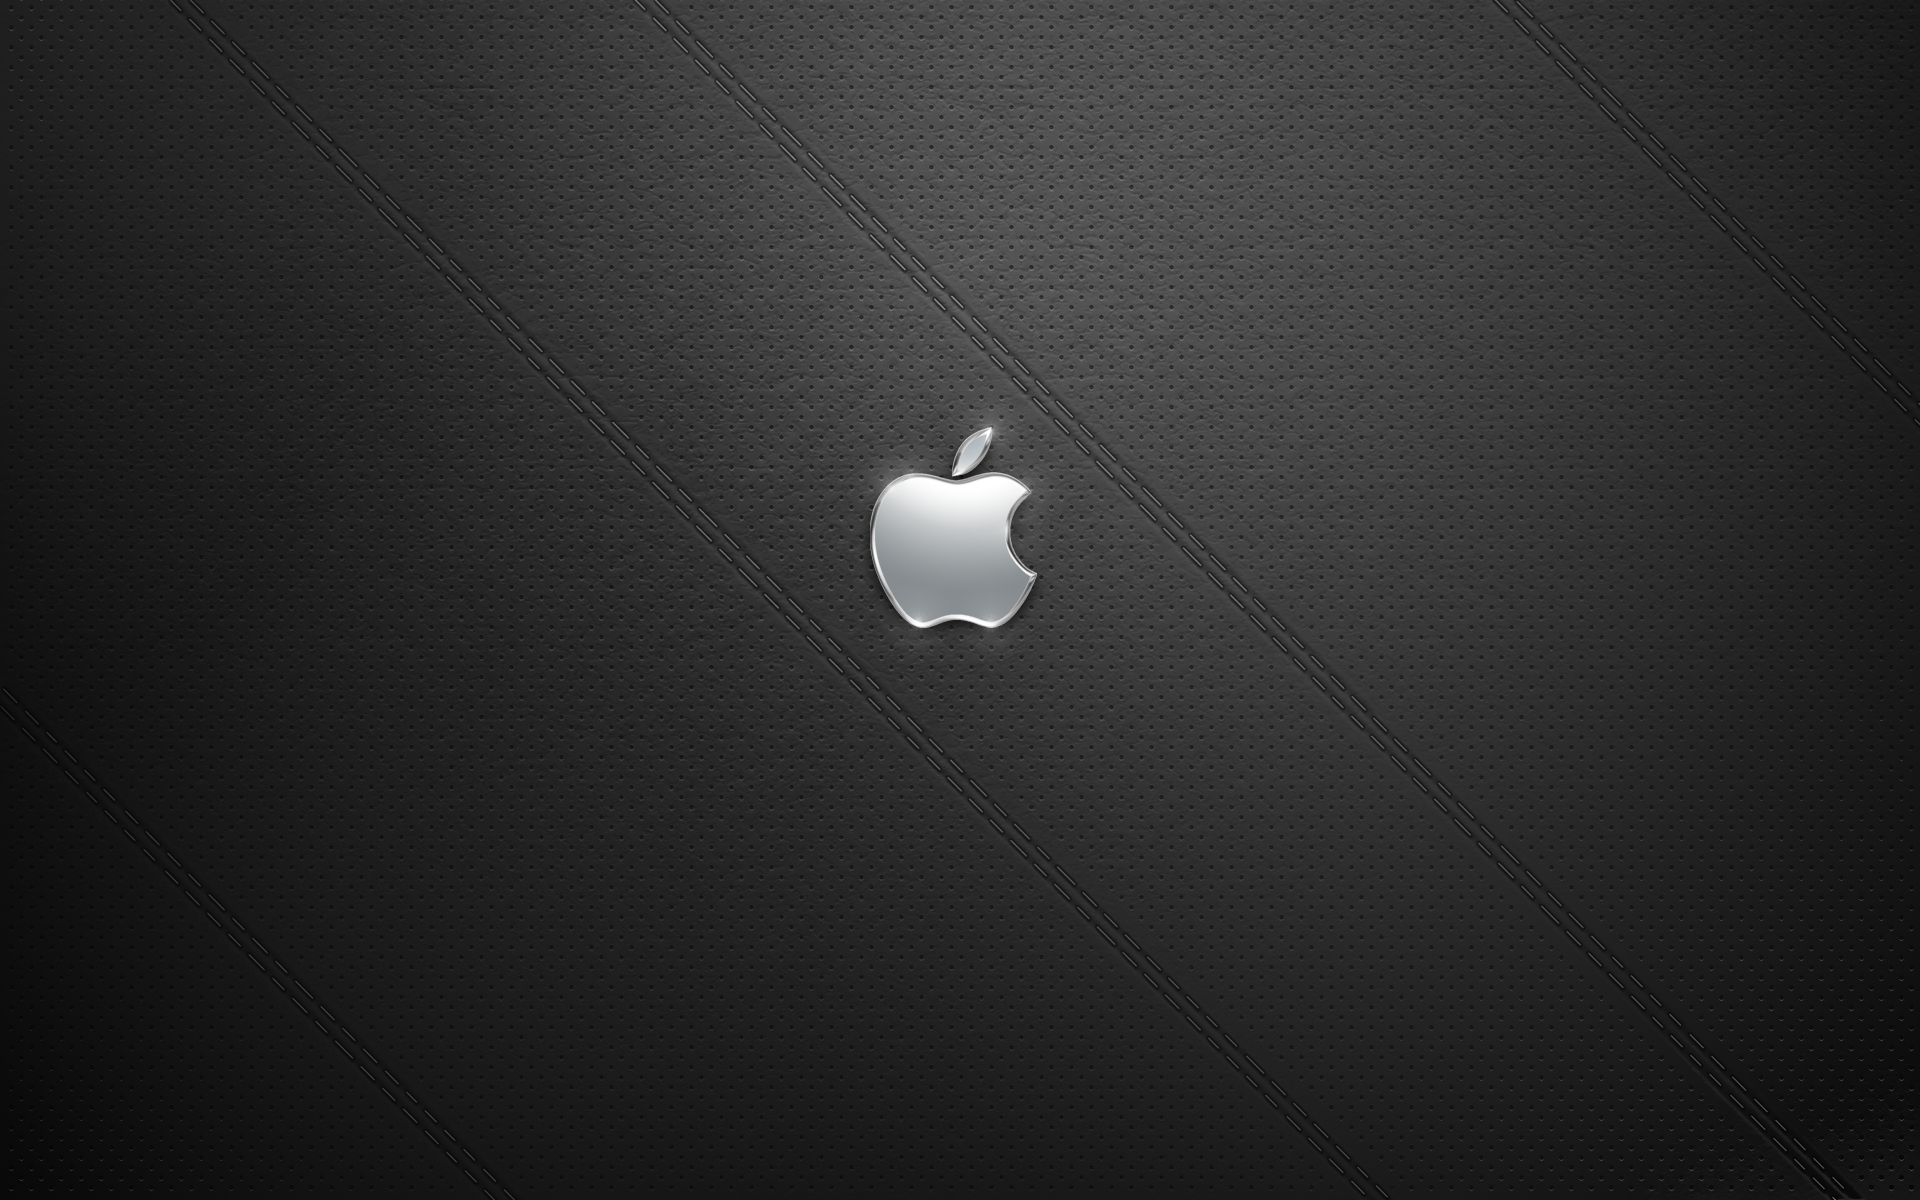 Apple Wallpapers and Backgrounds  Desktop Nexus Technology